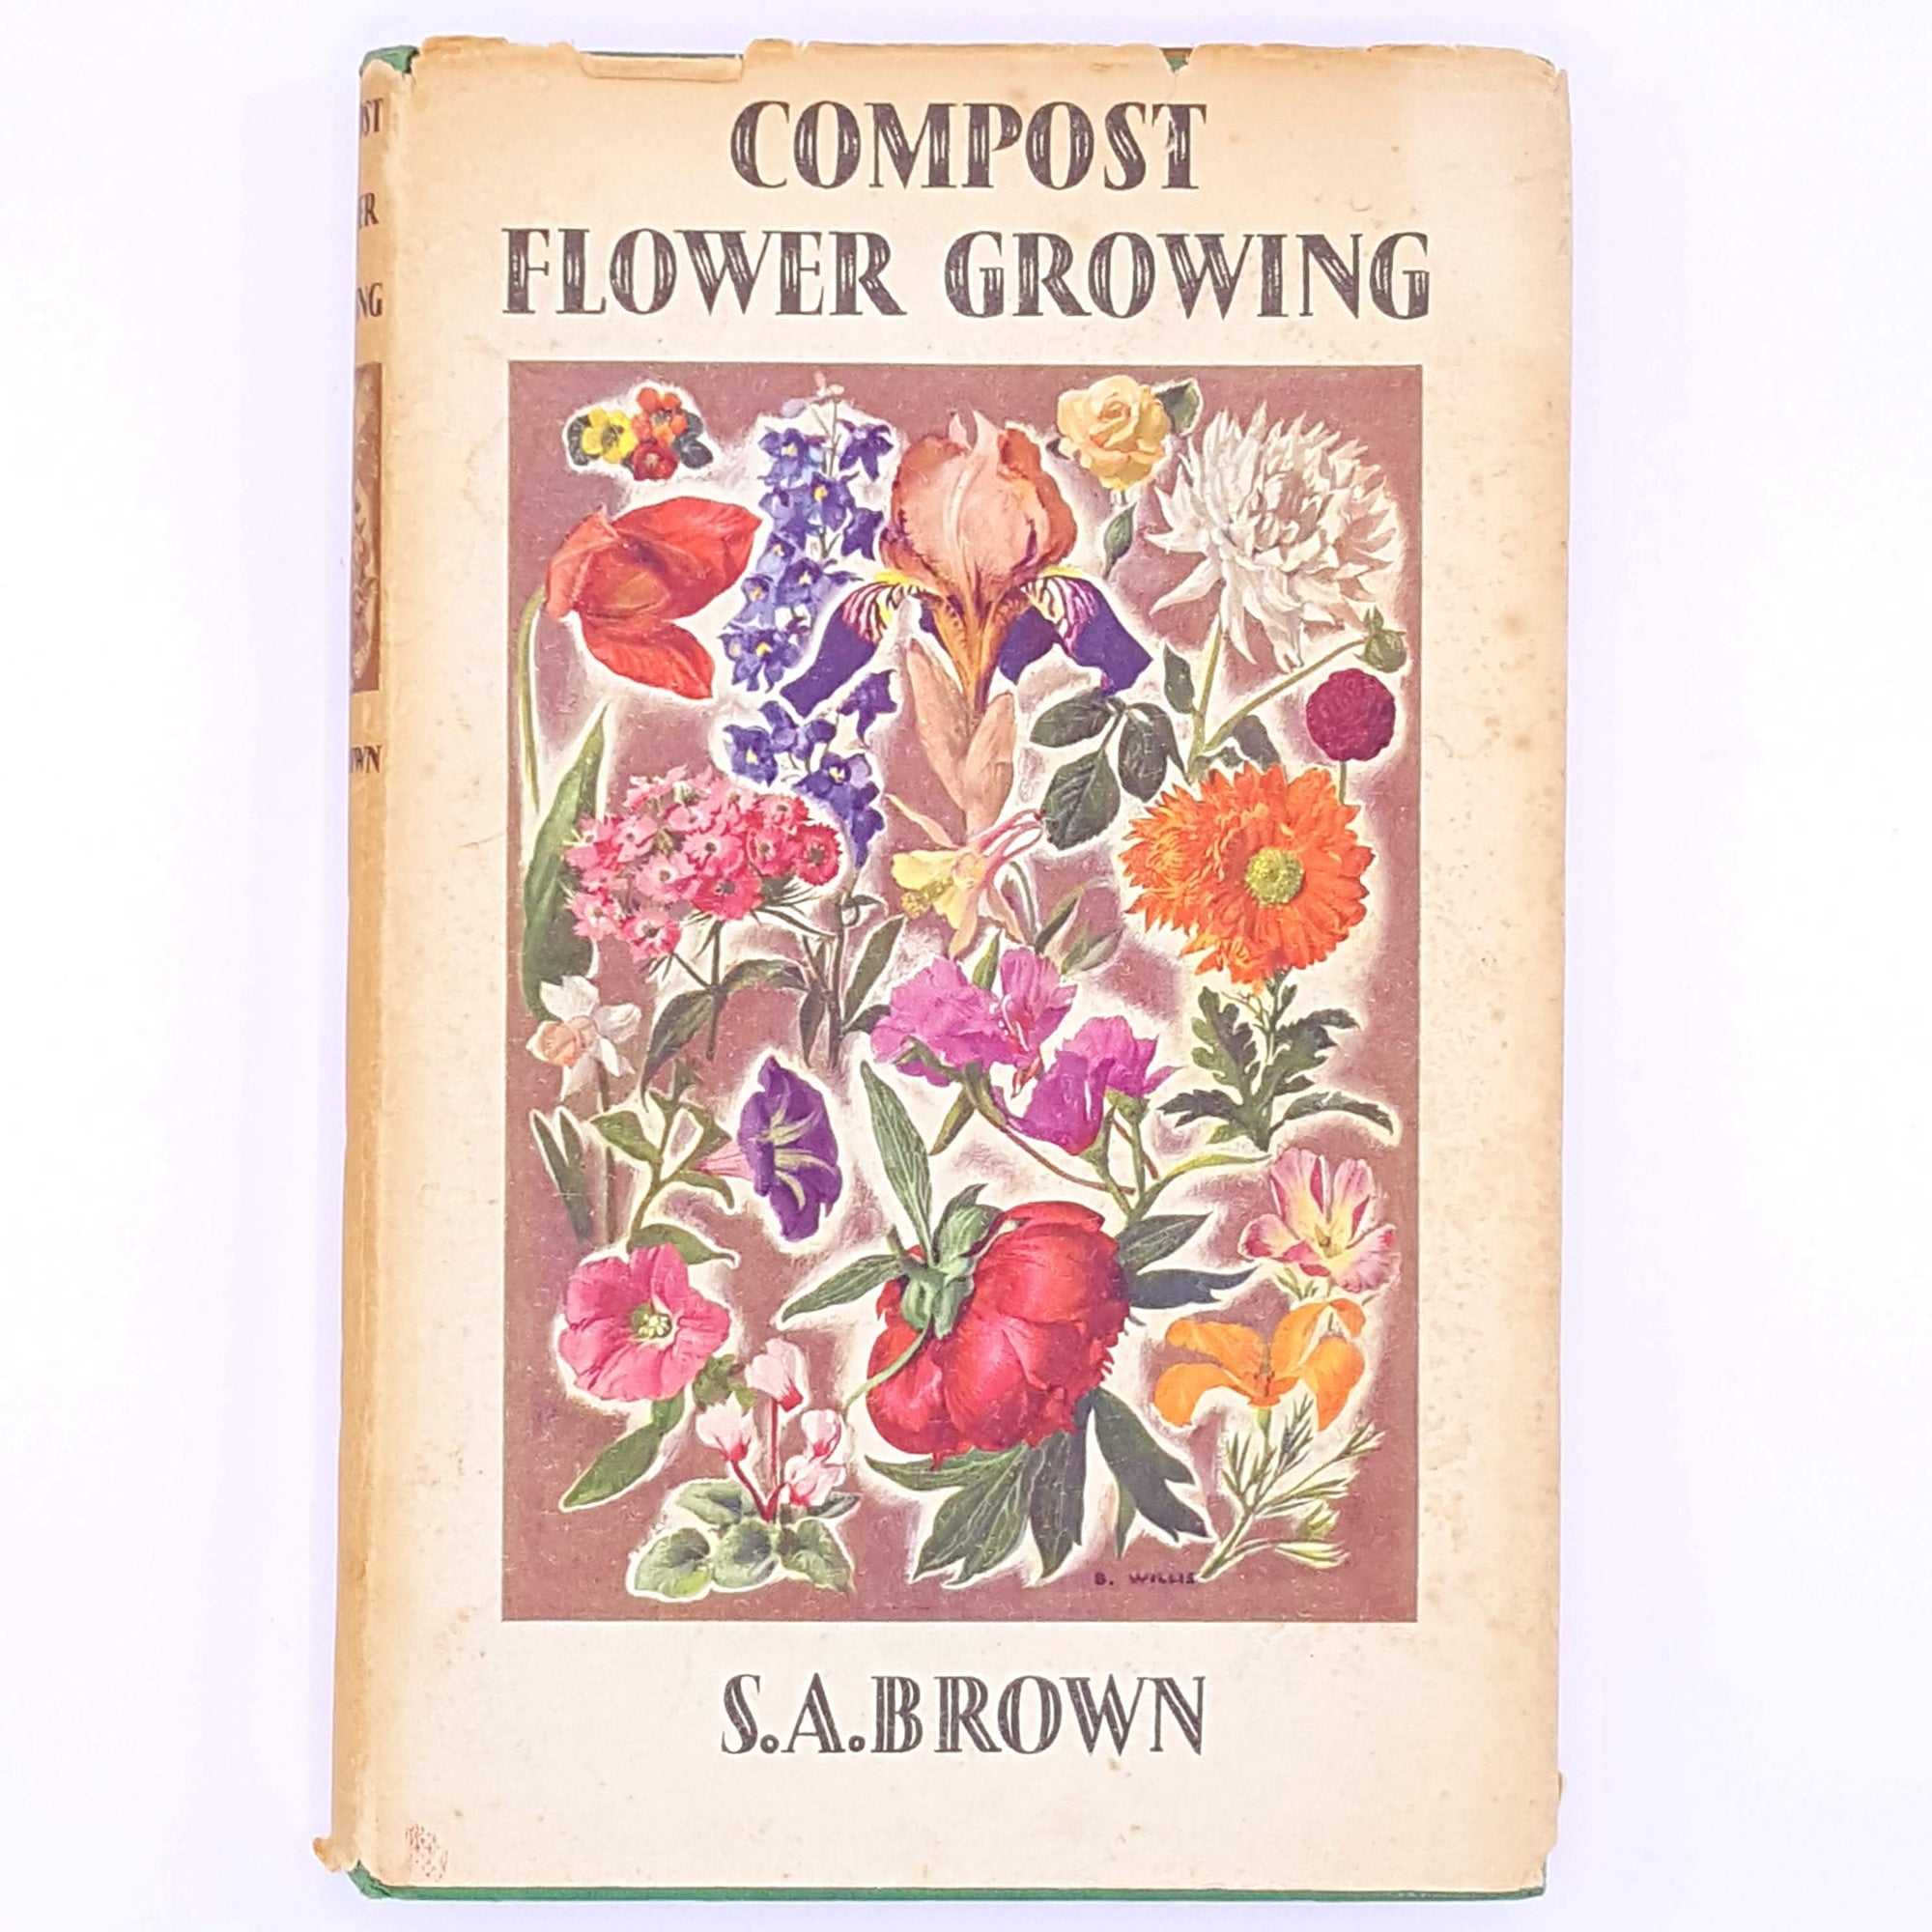 Garden Book Club, Compost Flower Growing, S.A.Brown, 1960